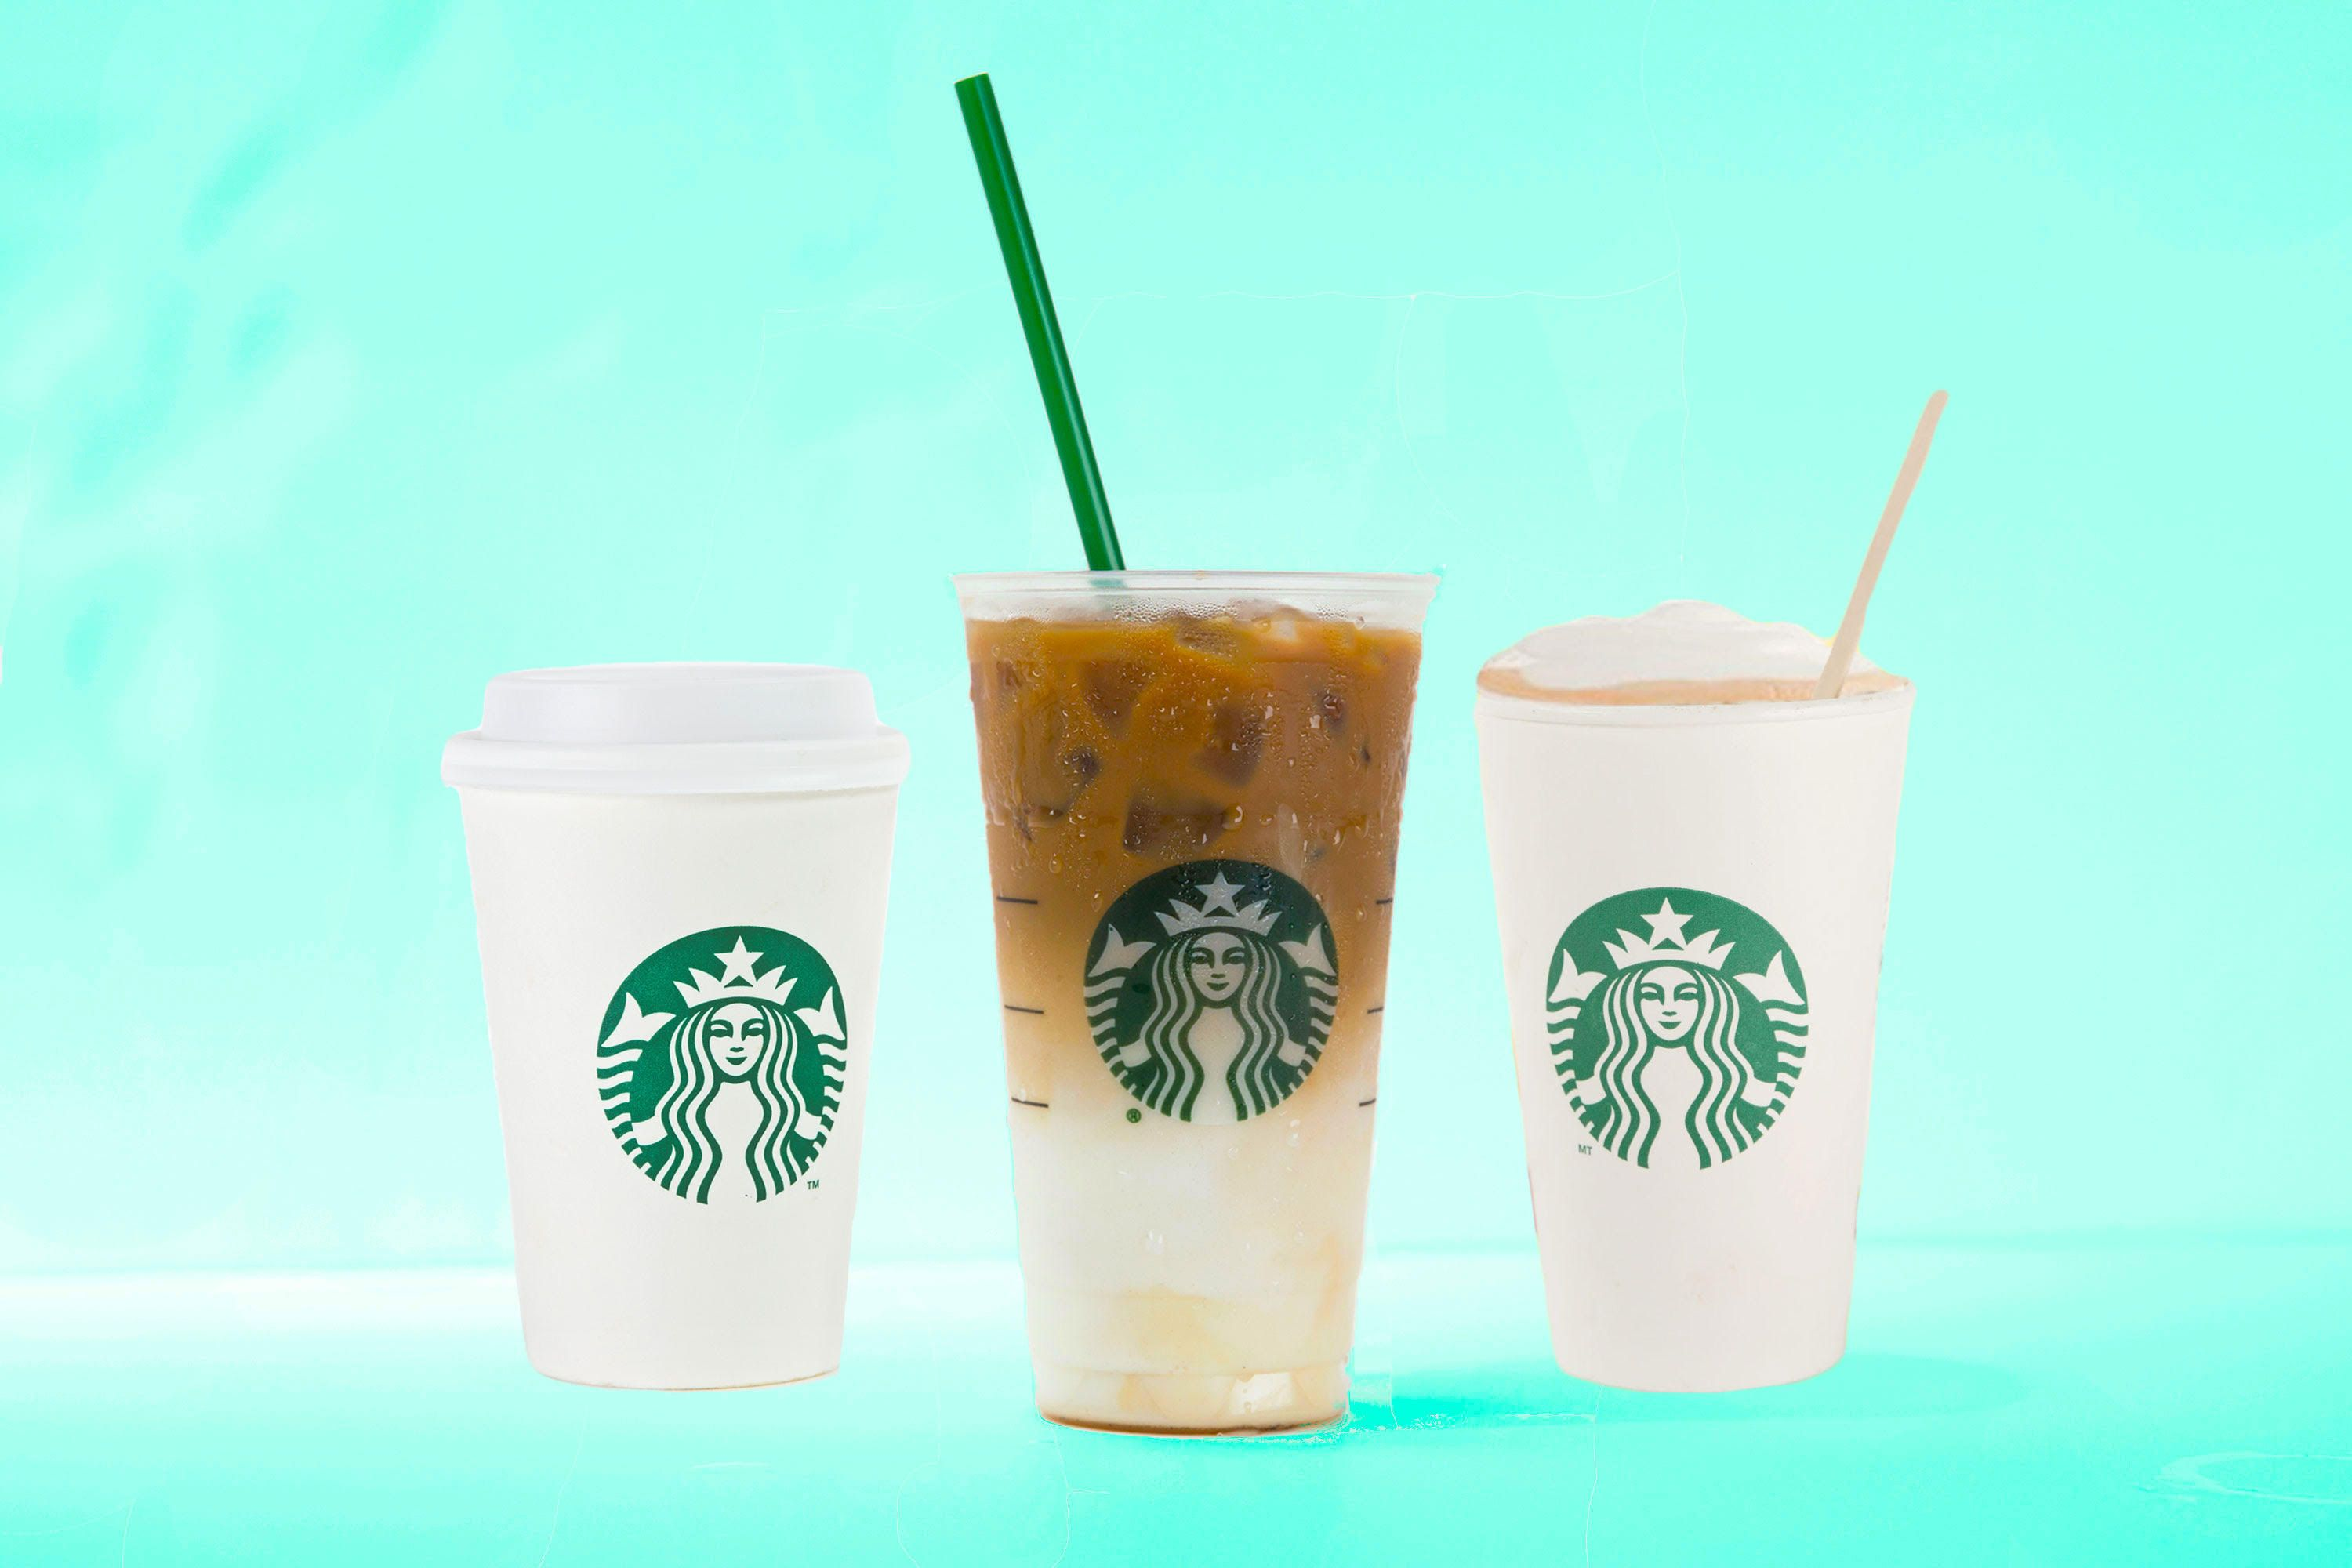 Your Favorite Starbucks Drinks Ranked by Calories | 2bstronger.com